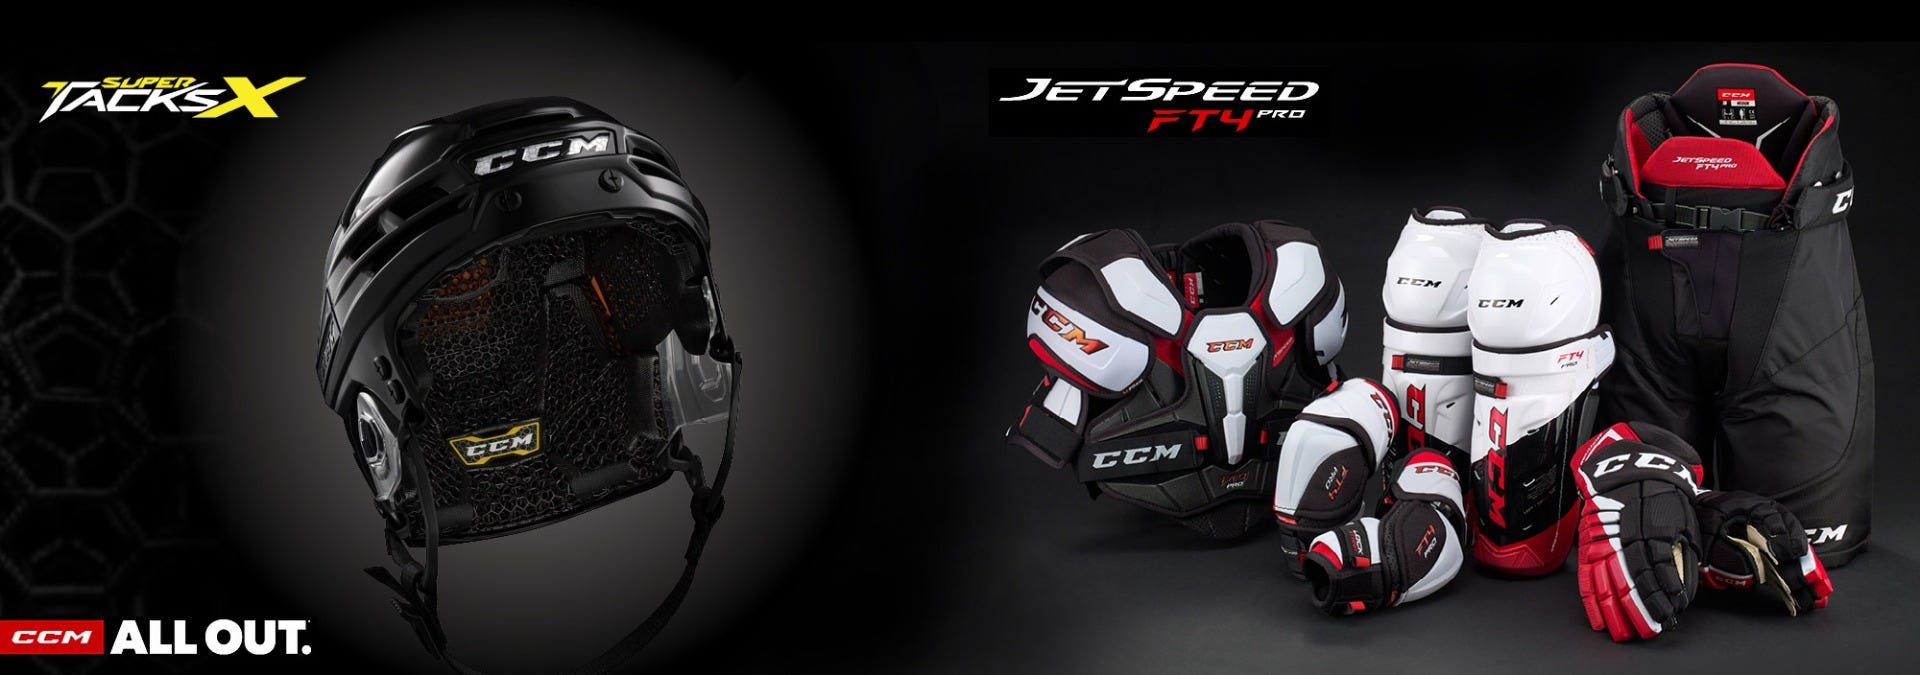 CCM Super Tacks X Helmet & JetSpeed FT4 Protective